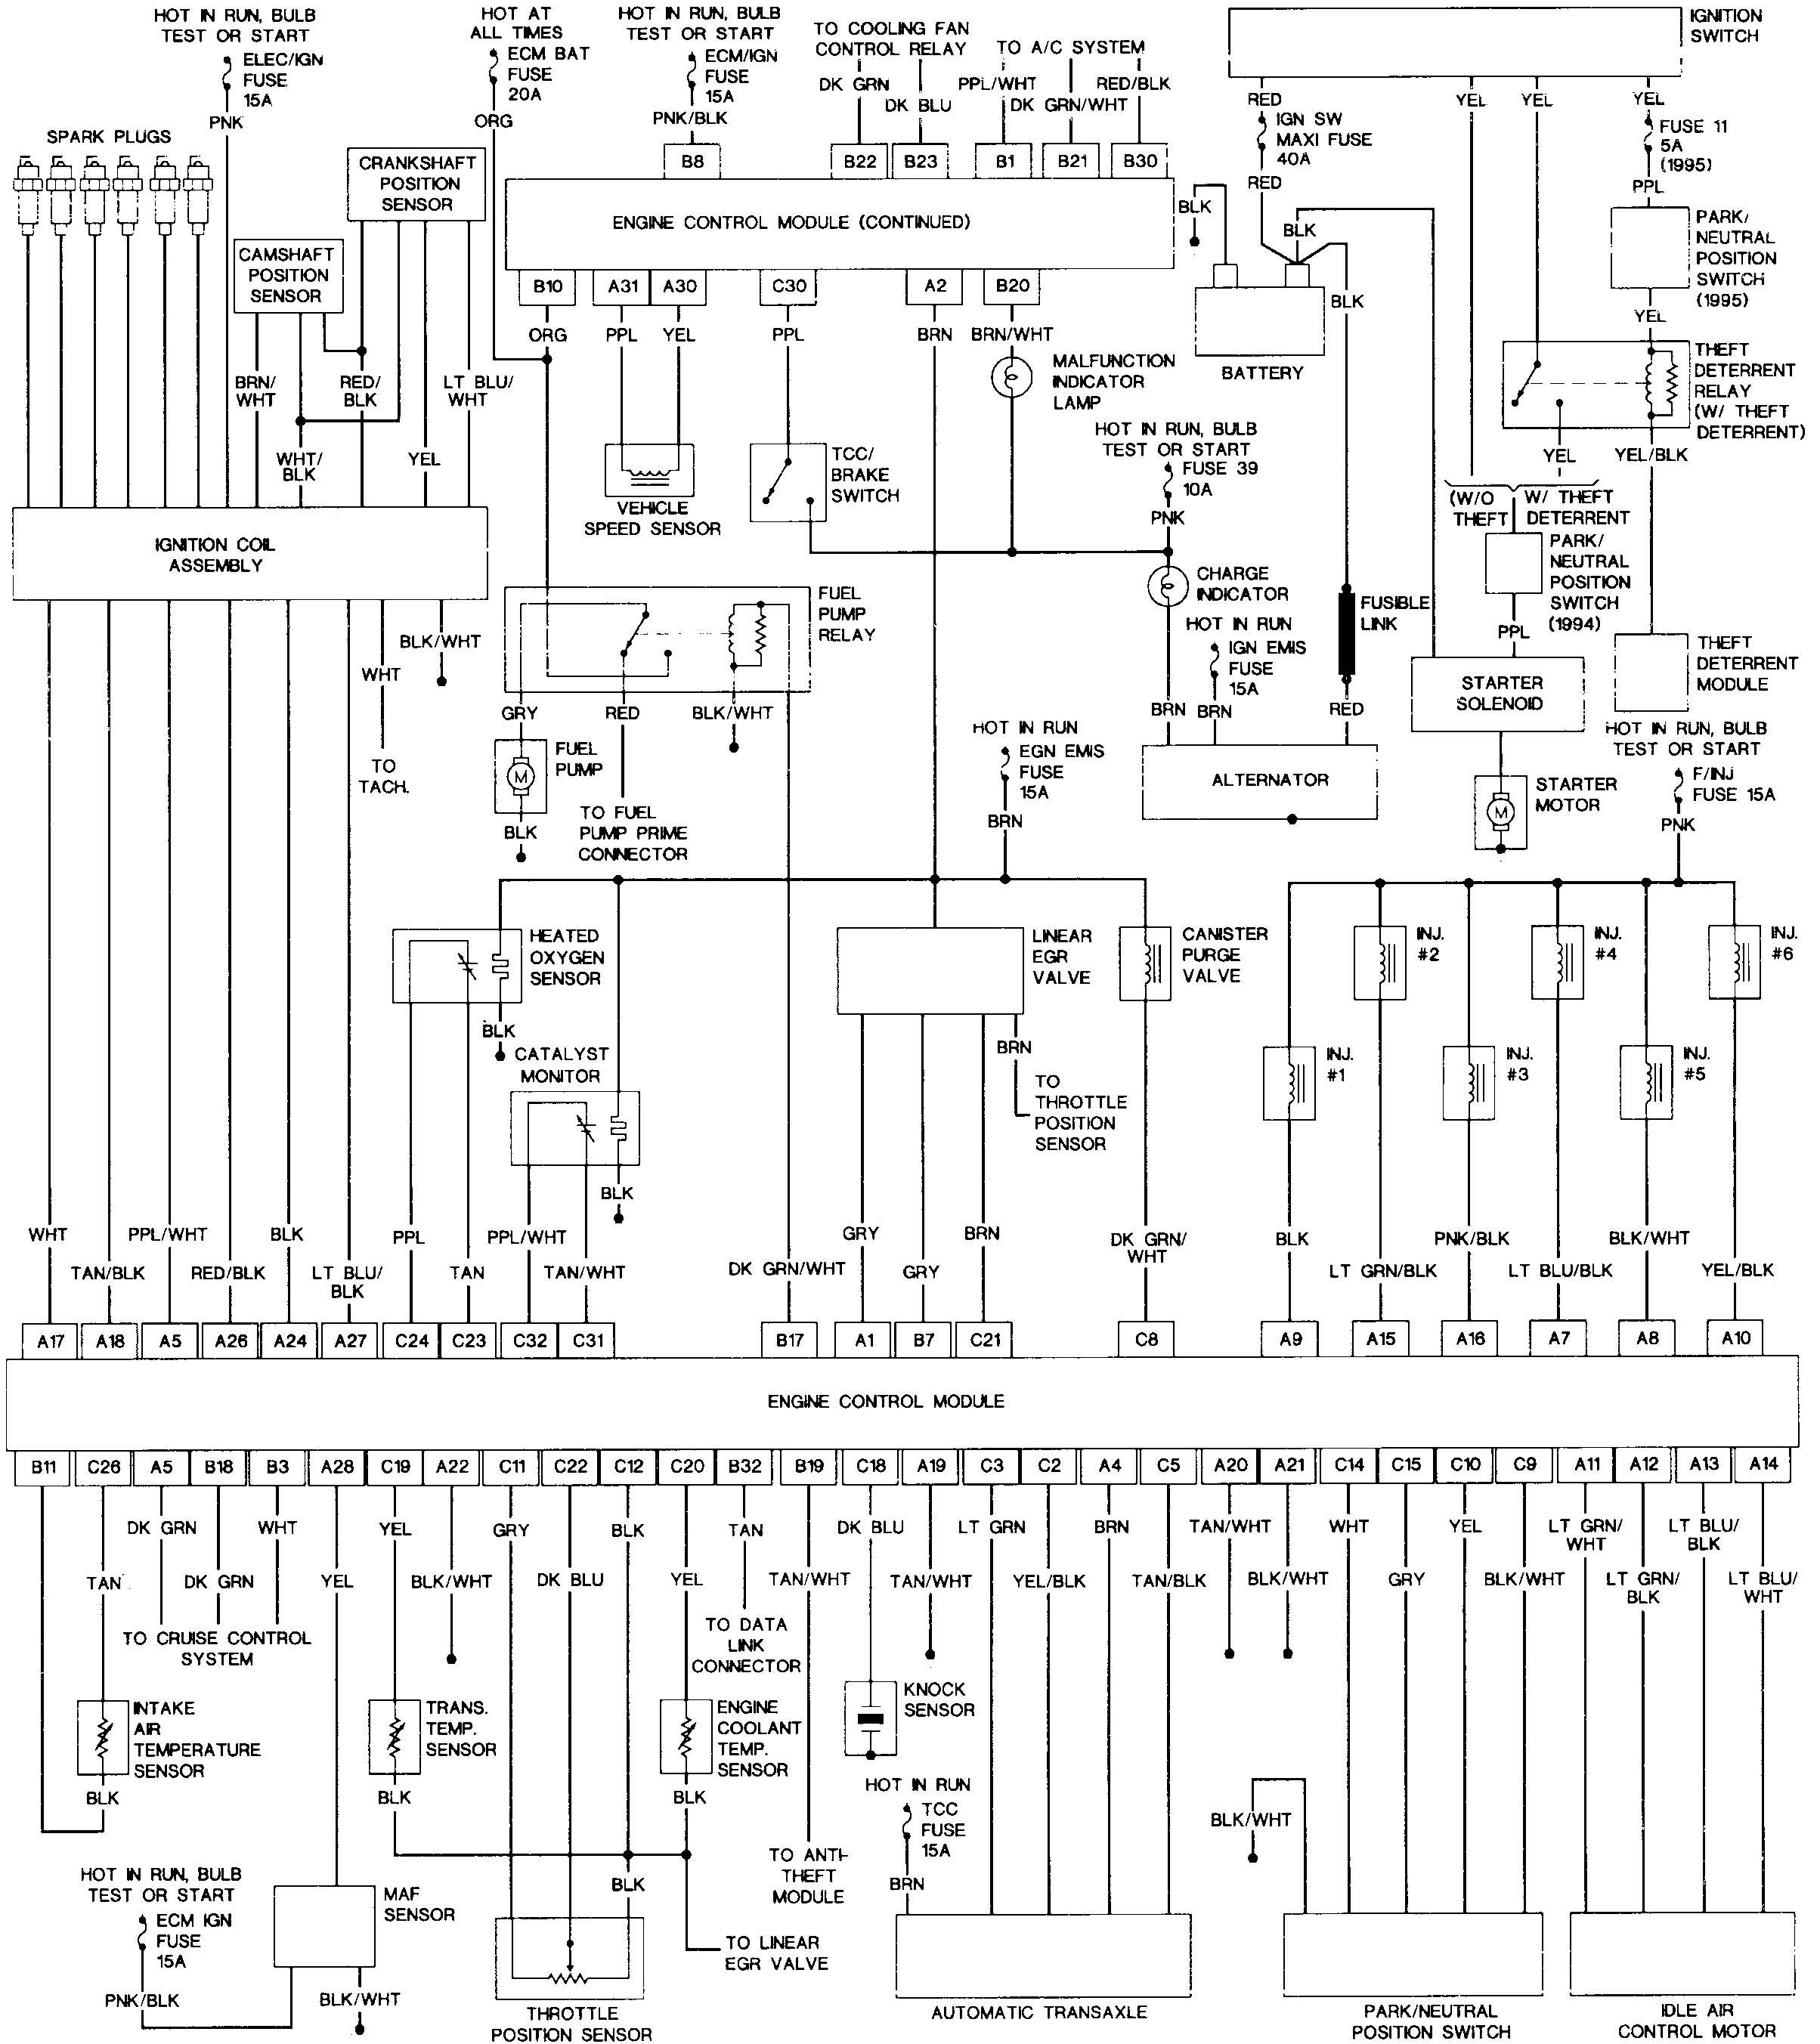 3 1l engine diagram world s largest selection of wiring diagram u2022 rh chalicehill co uk